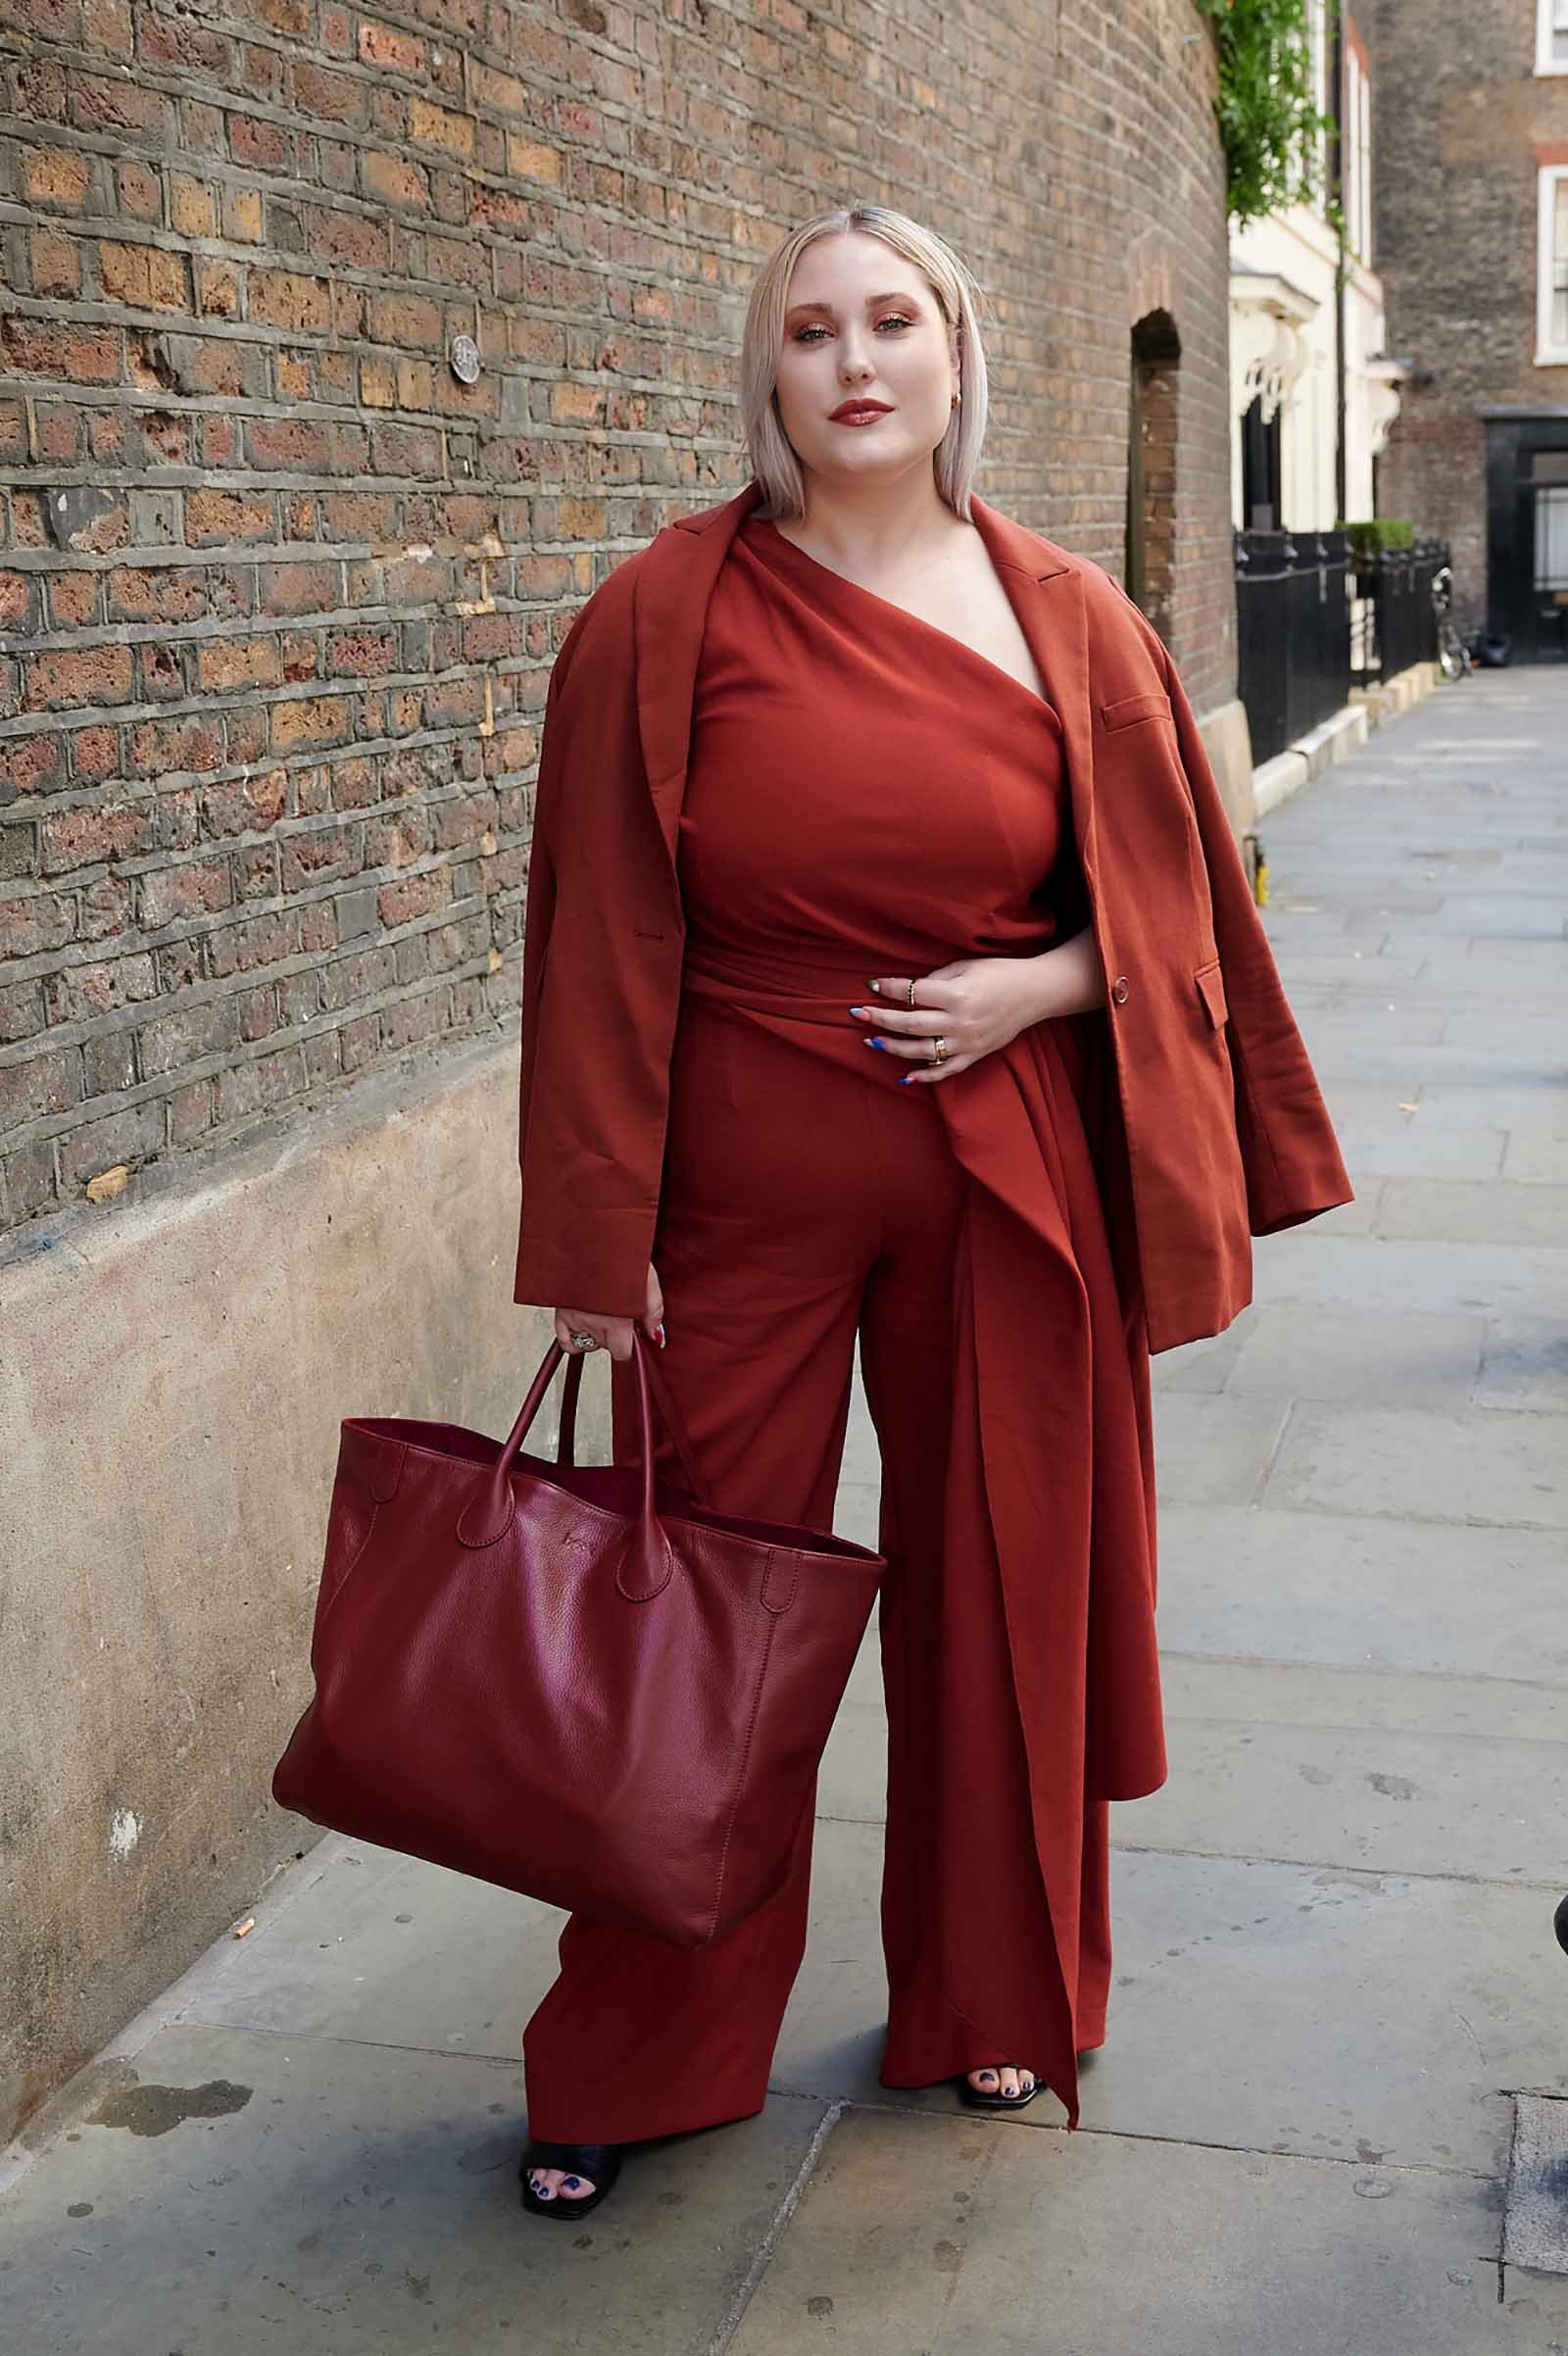 Hayley Hasselhoff works a bold monochrome look!